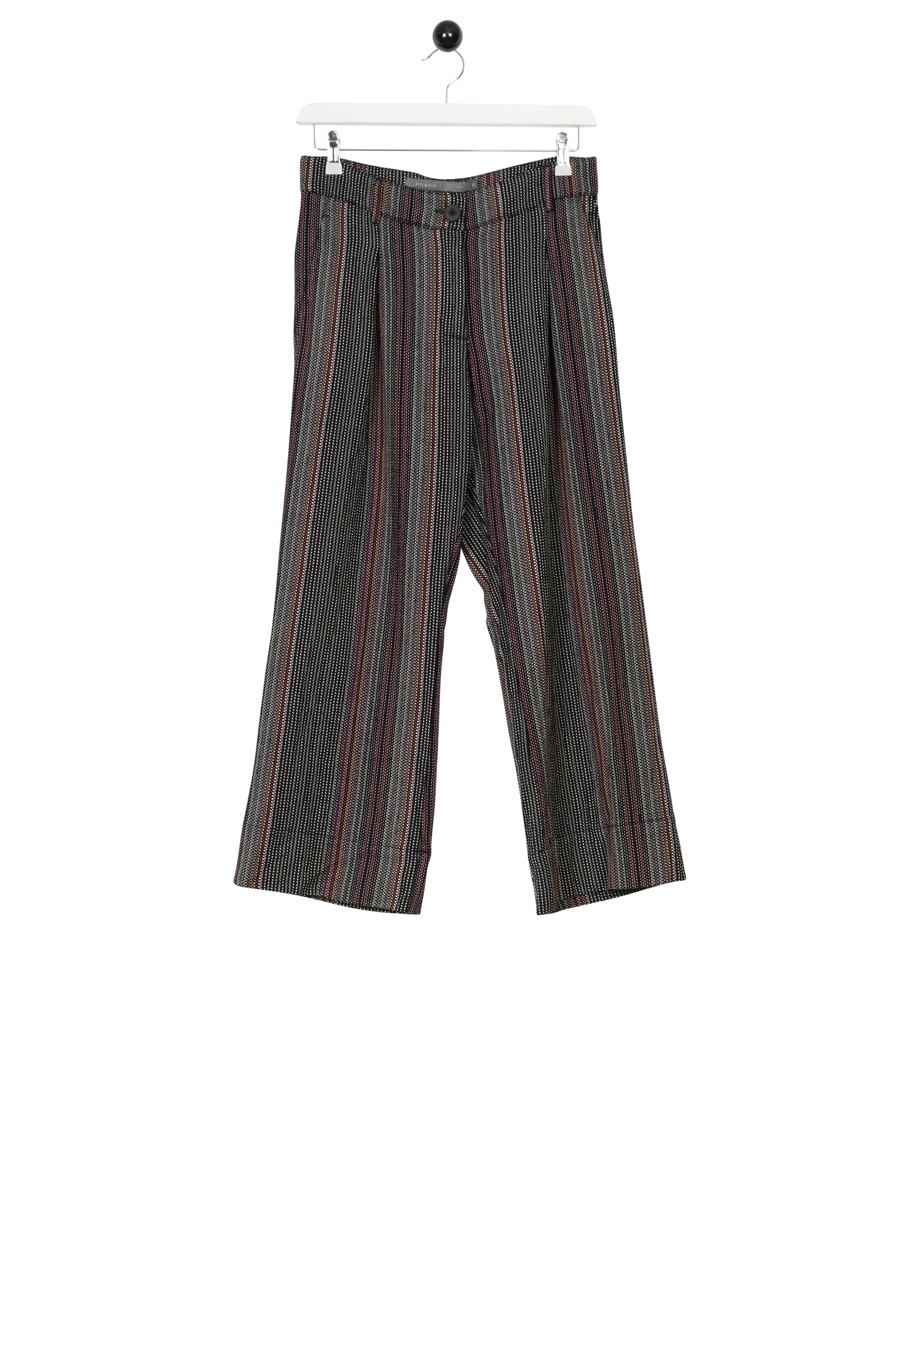 Grenoble Trousers